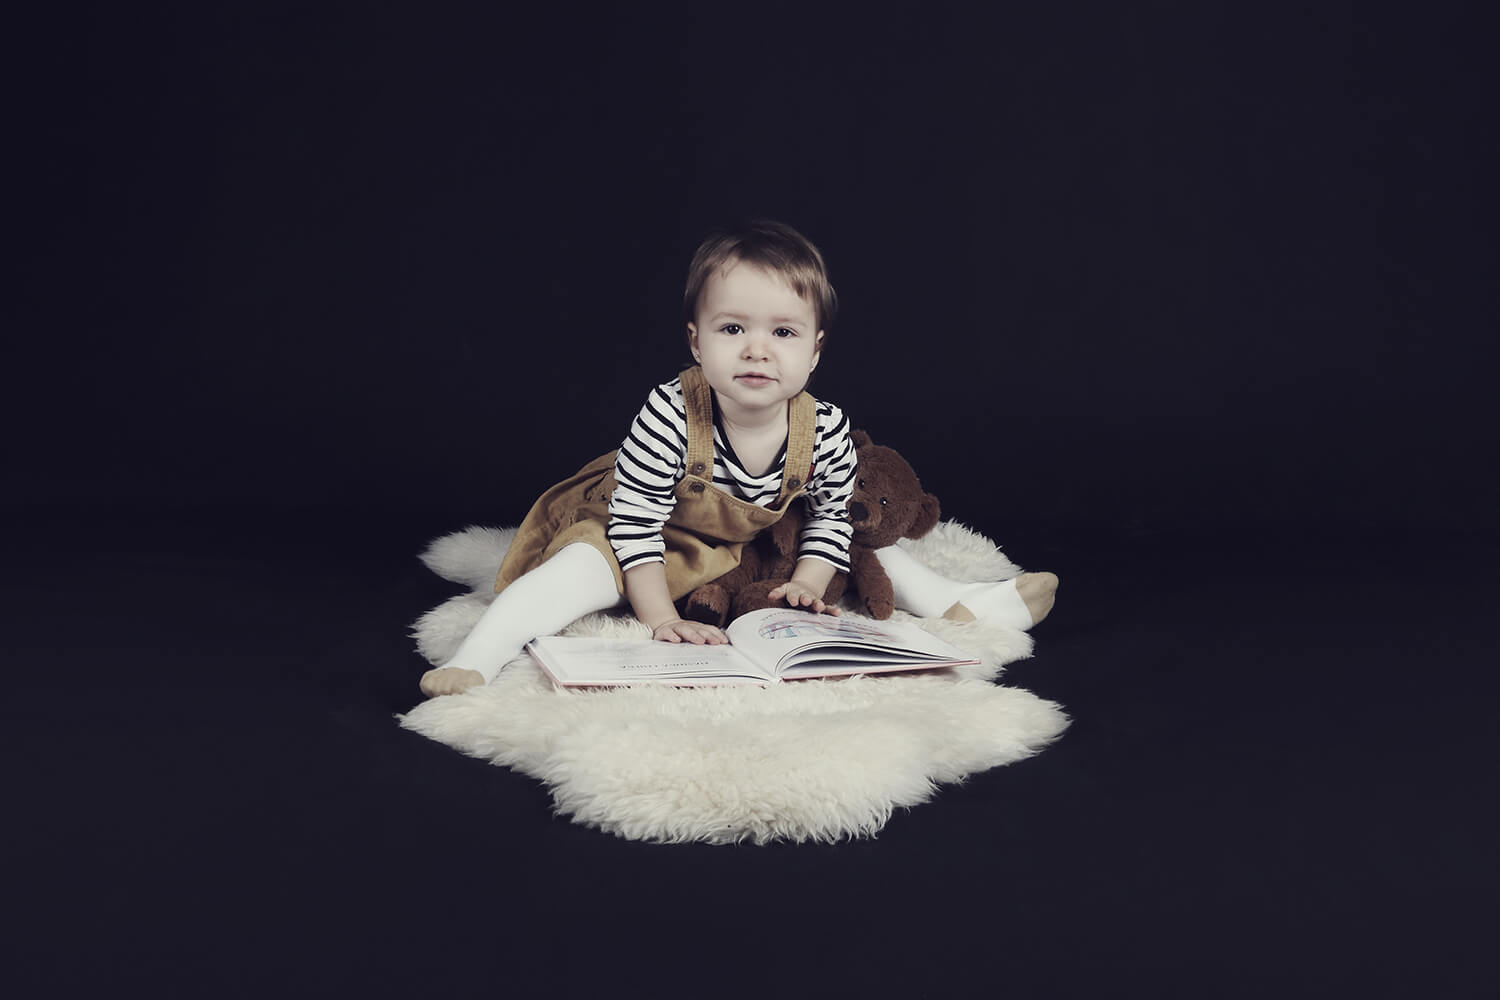 family photo of a little girl with a book on a dark background